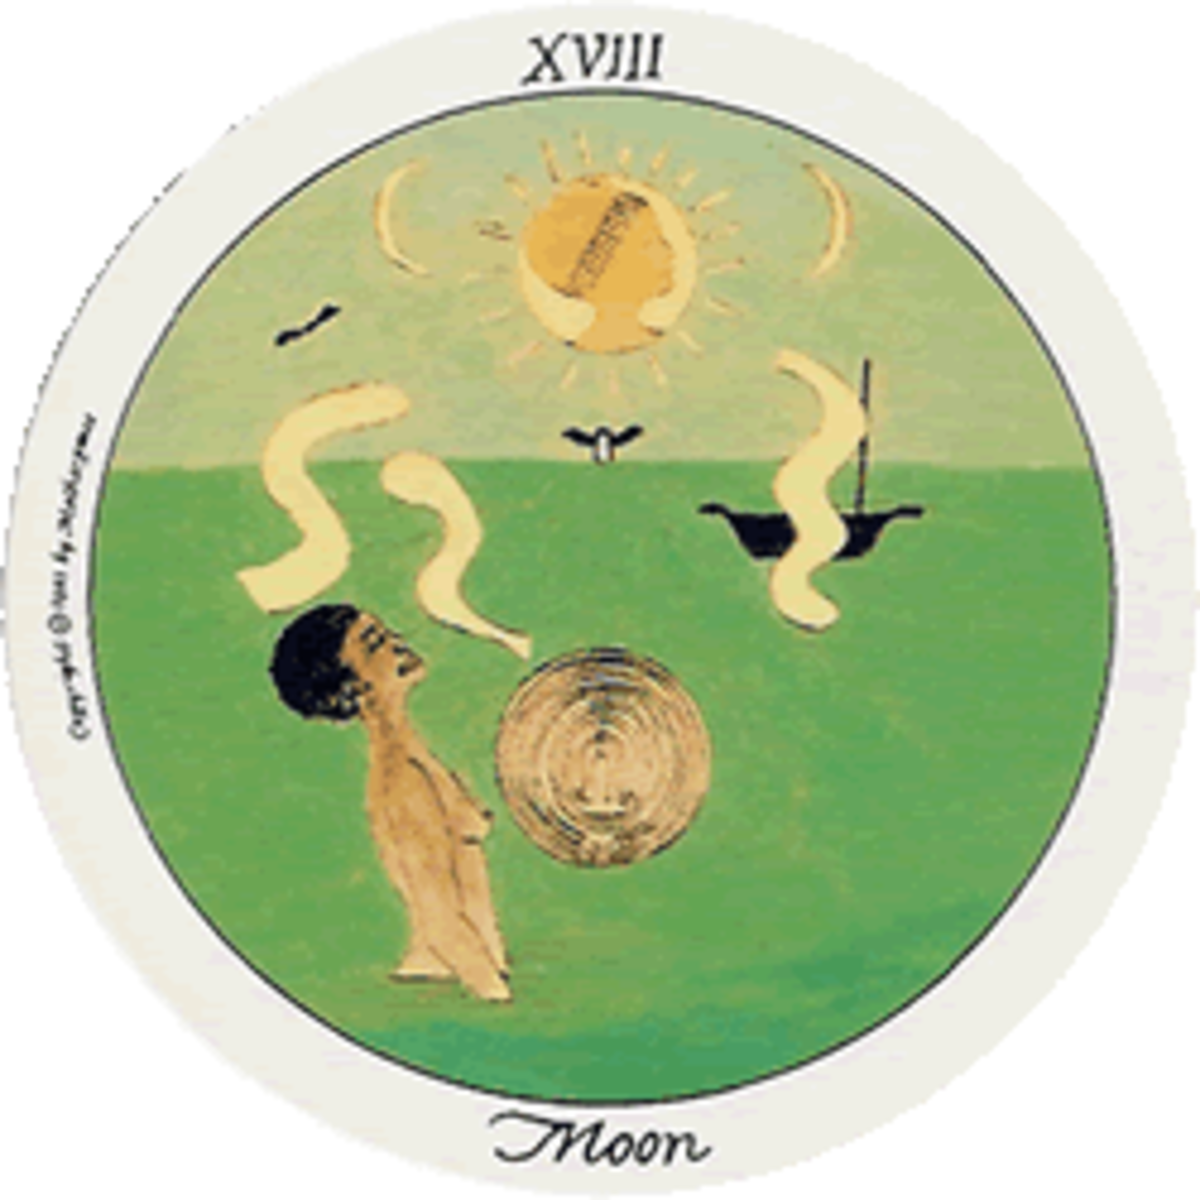 The Moon is about changes that we choose to make ourselves, though it can be a period of confusion.